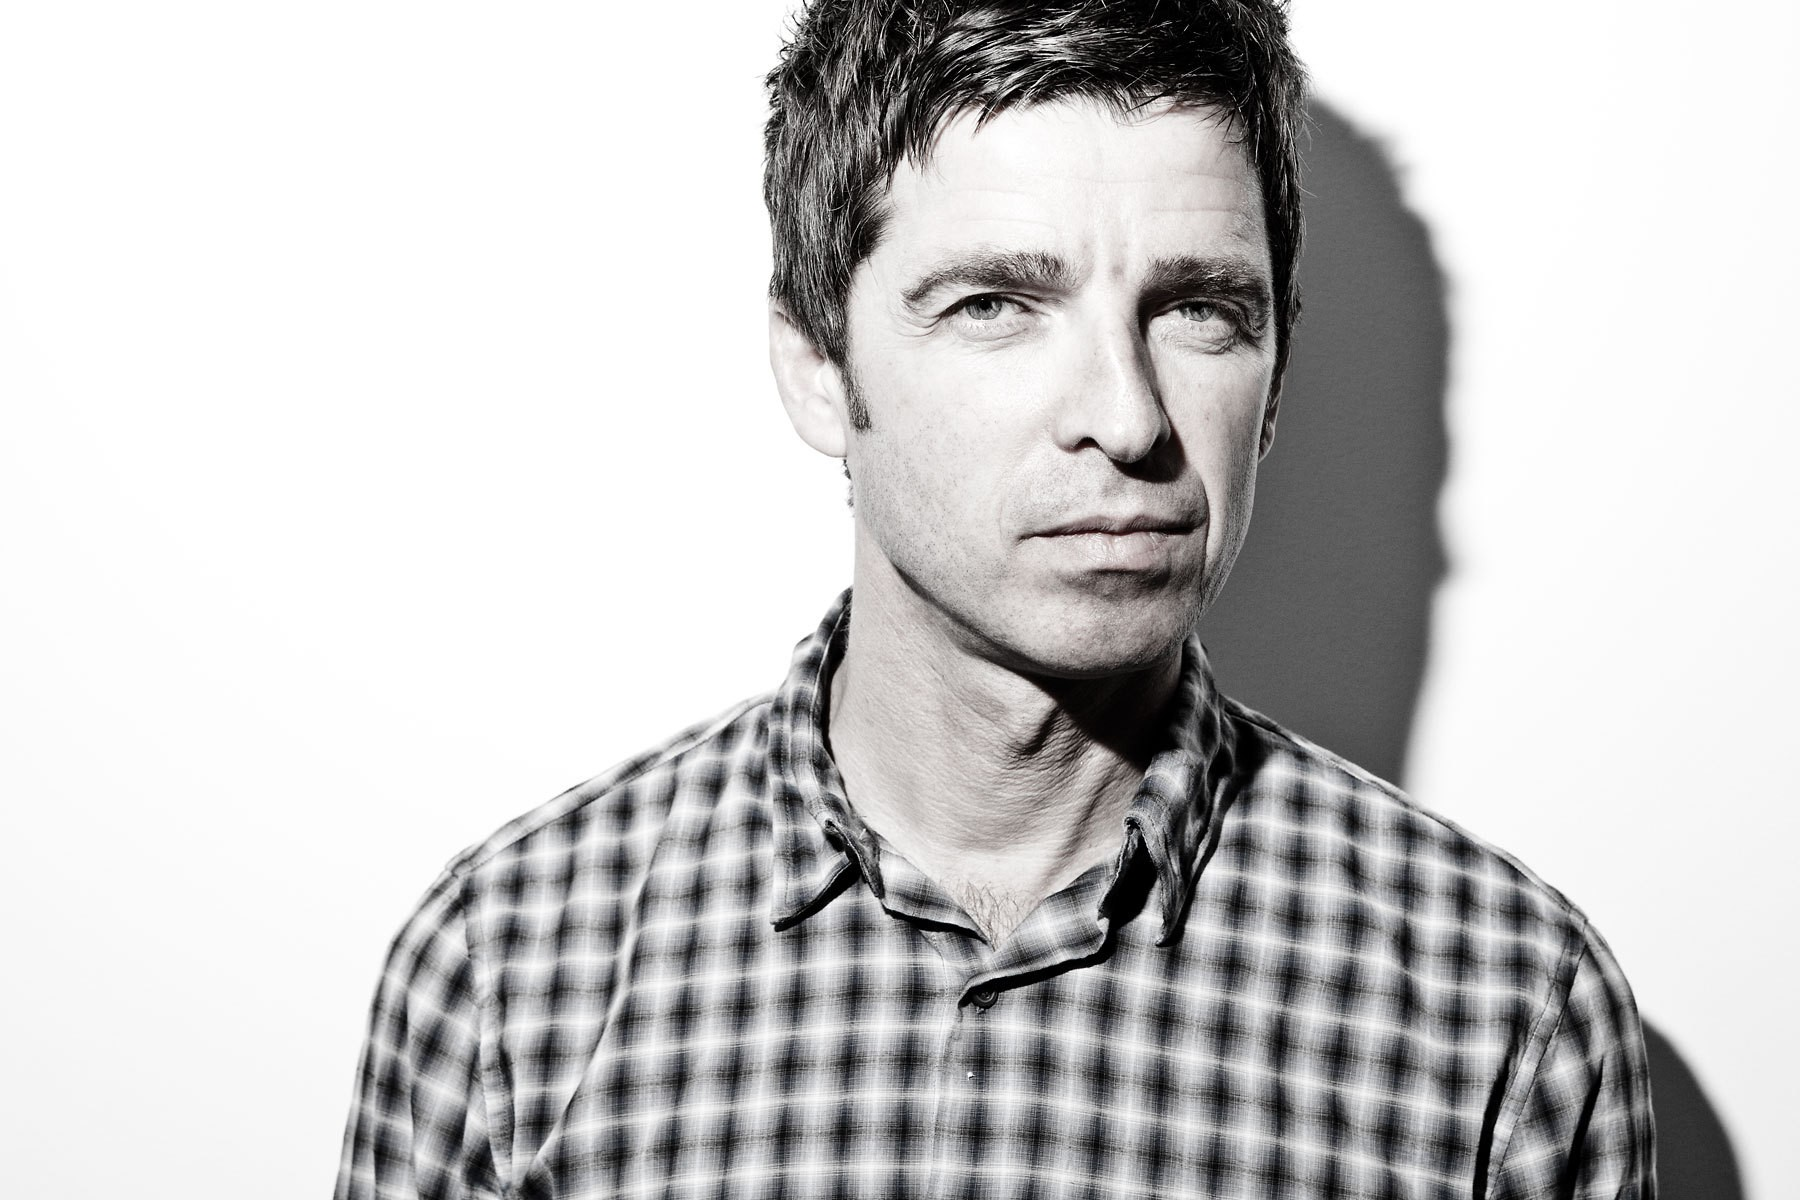 NOEL GALLAGHER tinnitus acúfenos